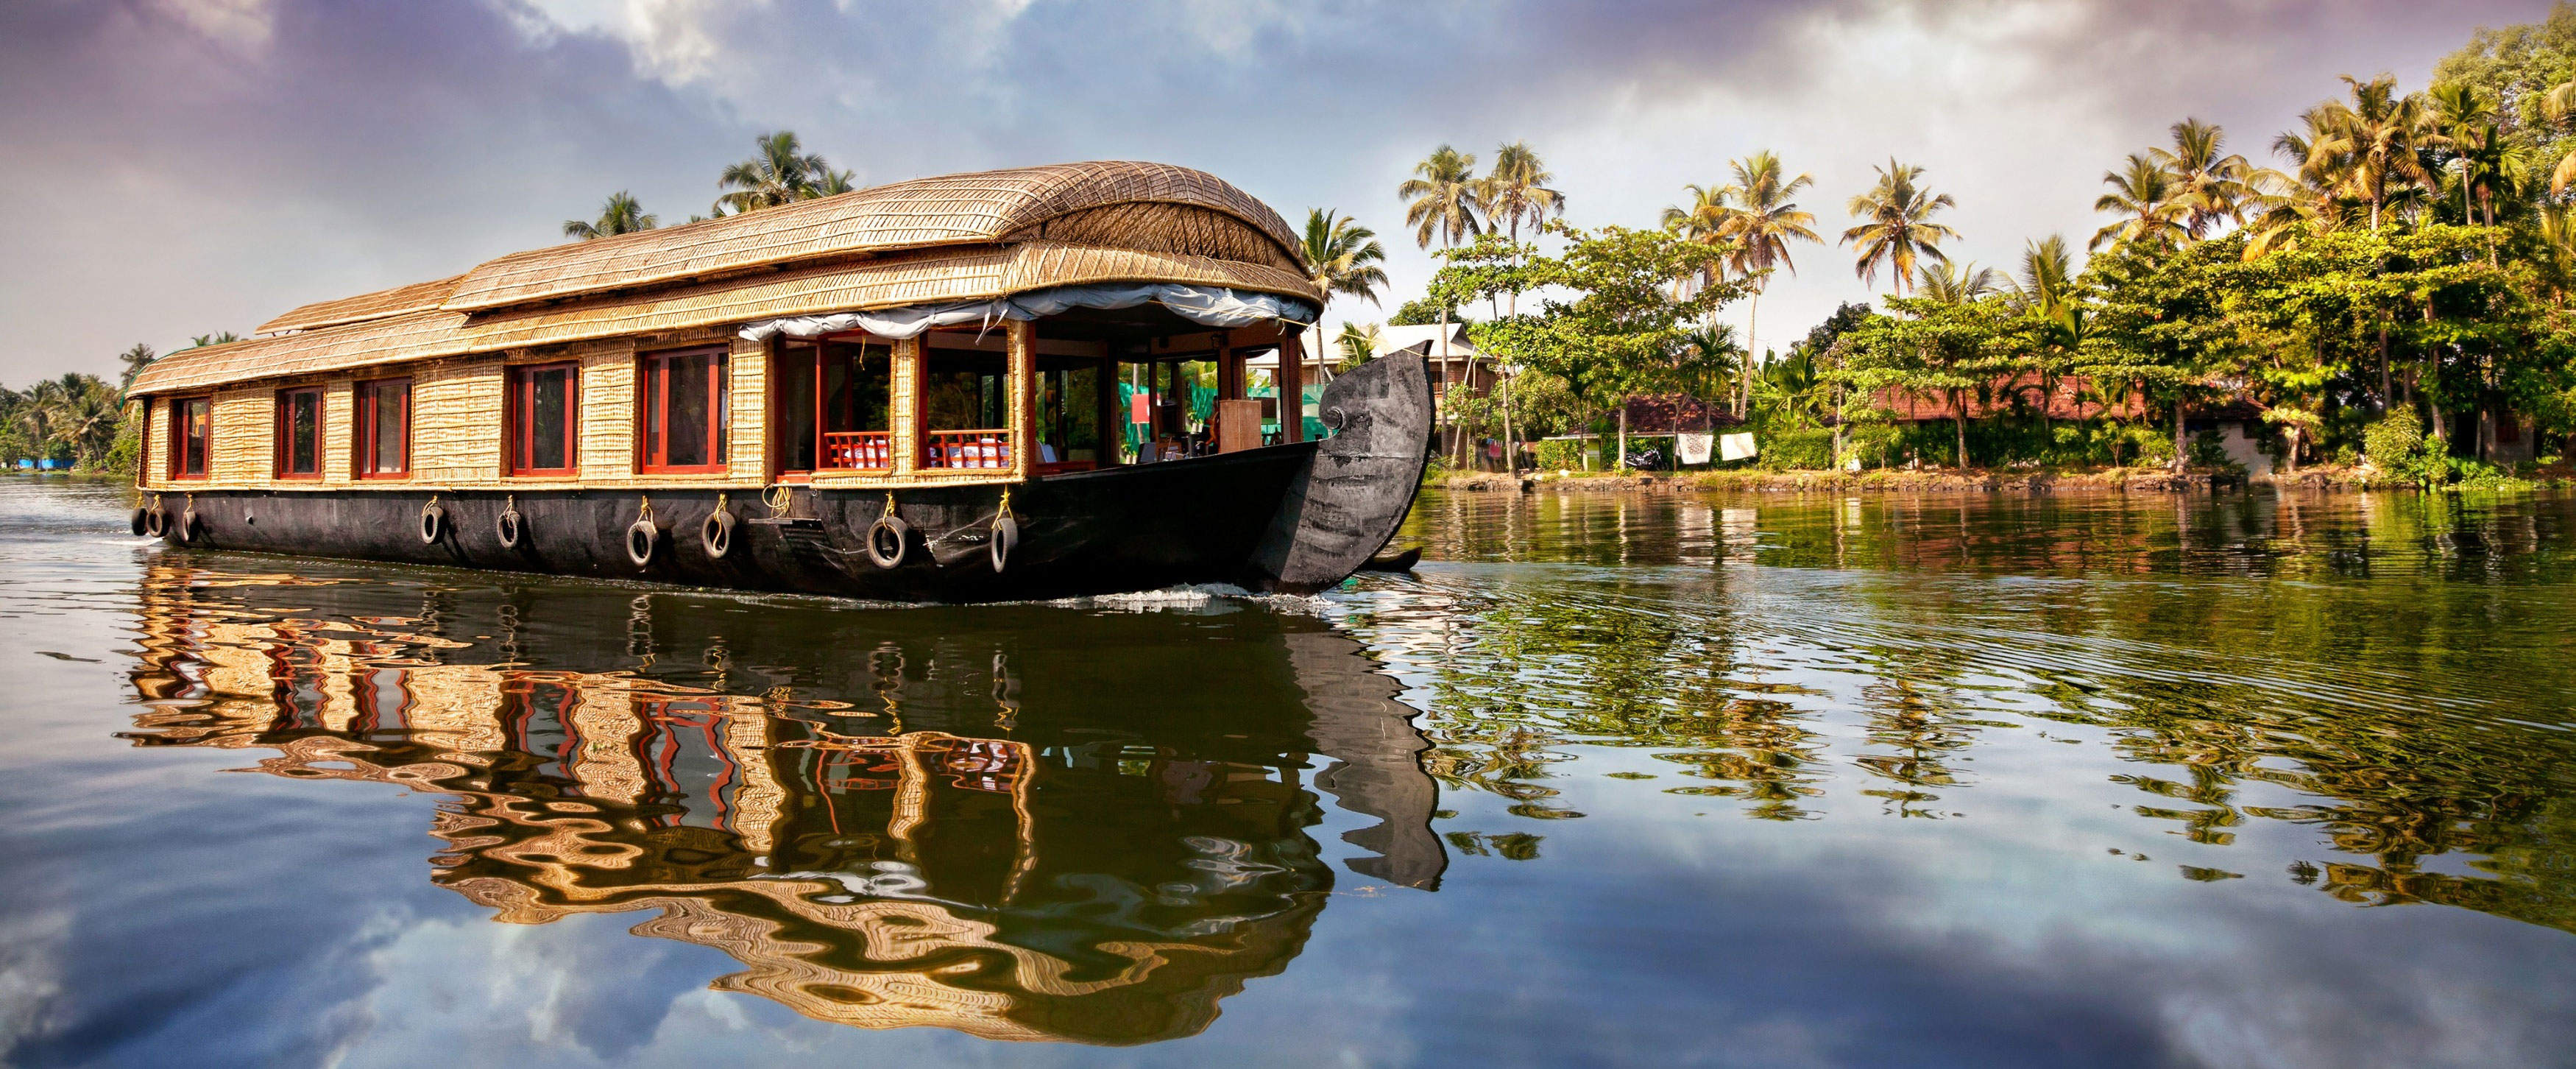 Kerala Backwaters Travel Guide